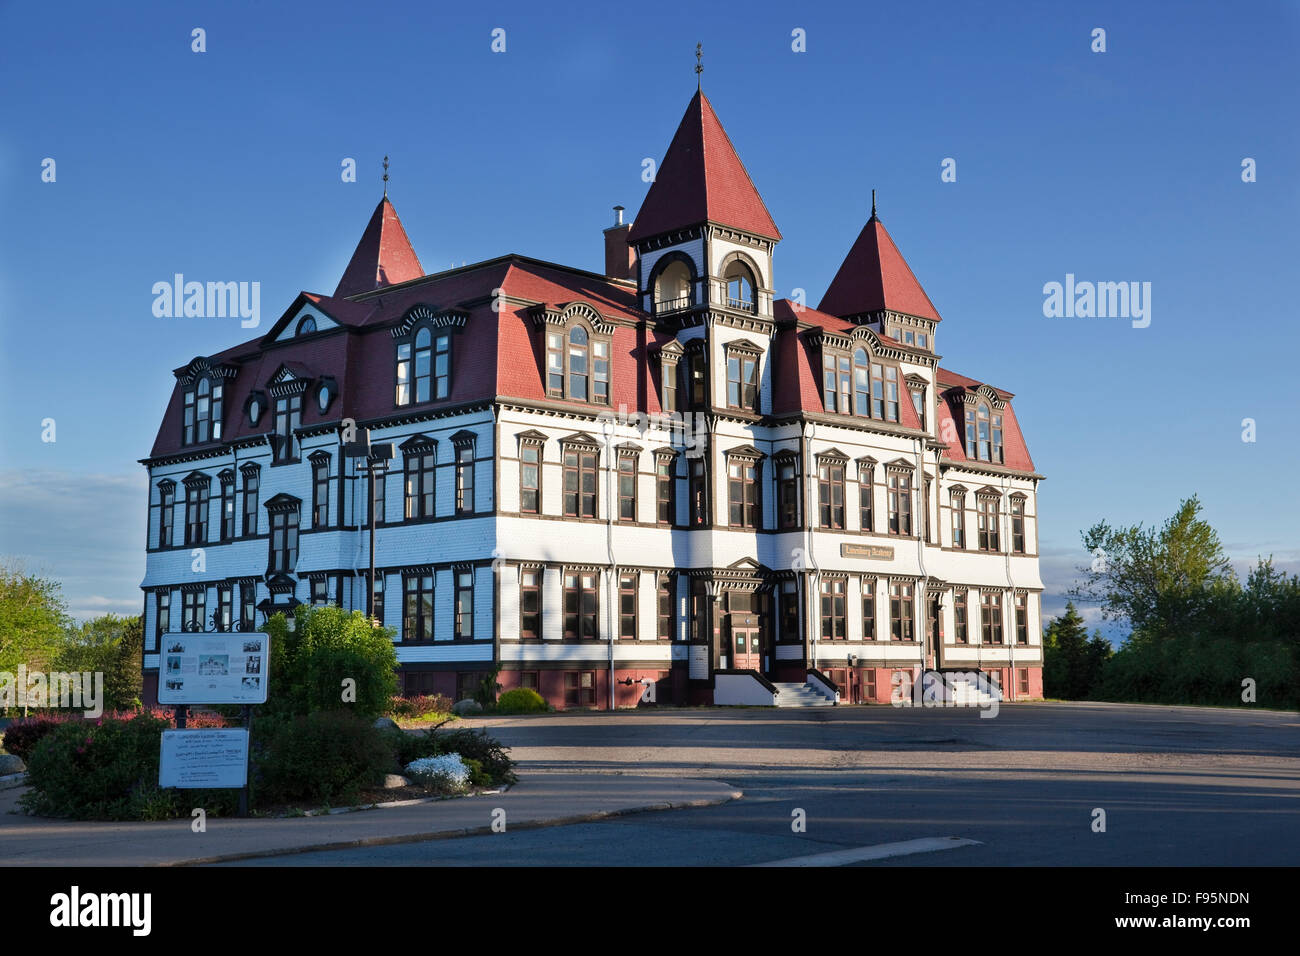 Threestorey wooden Victorian building built between 18931995 that continues to function as a primary school in Lunenburg, - Stock Image